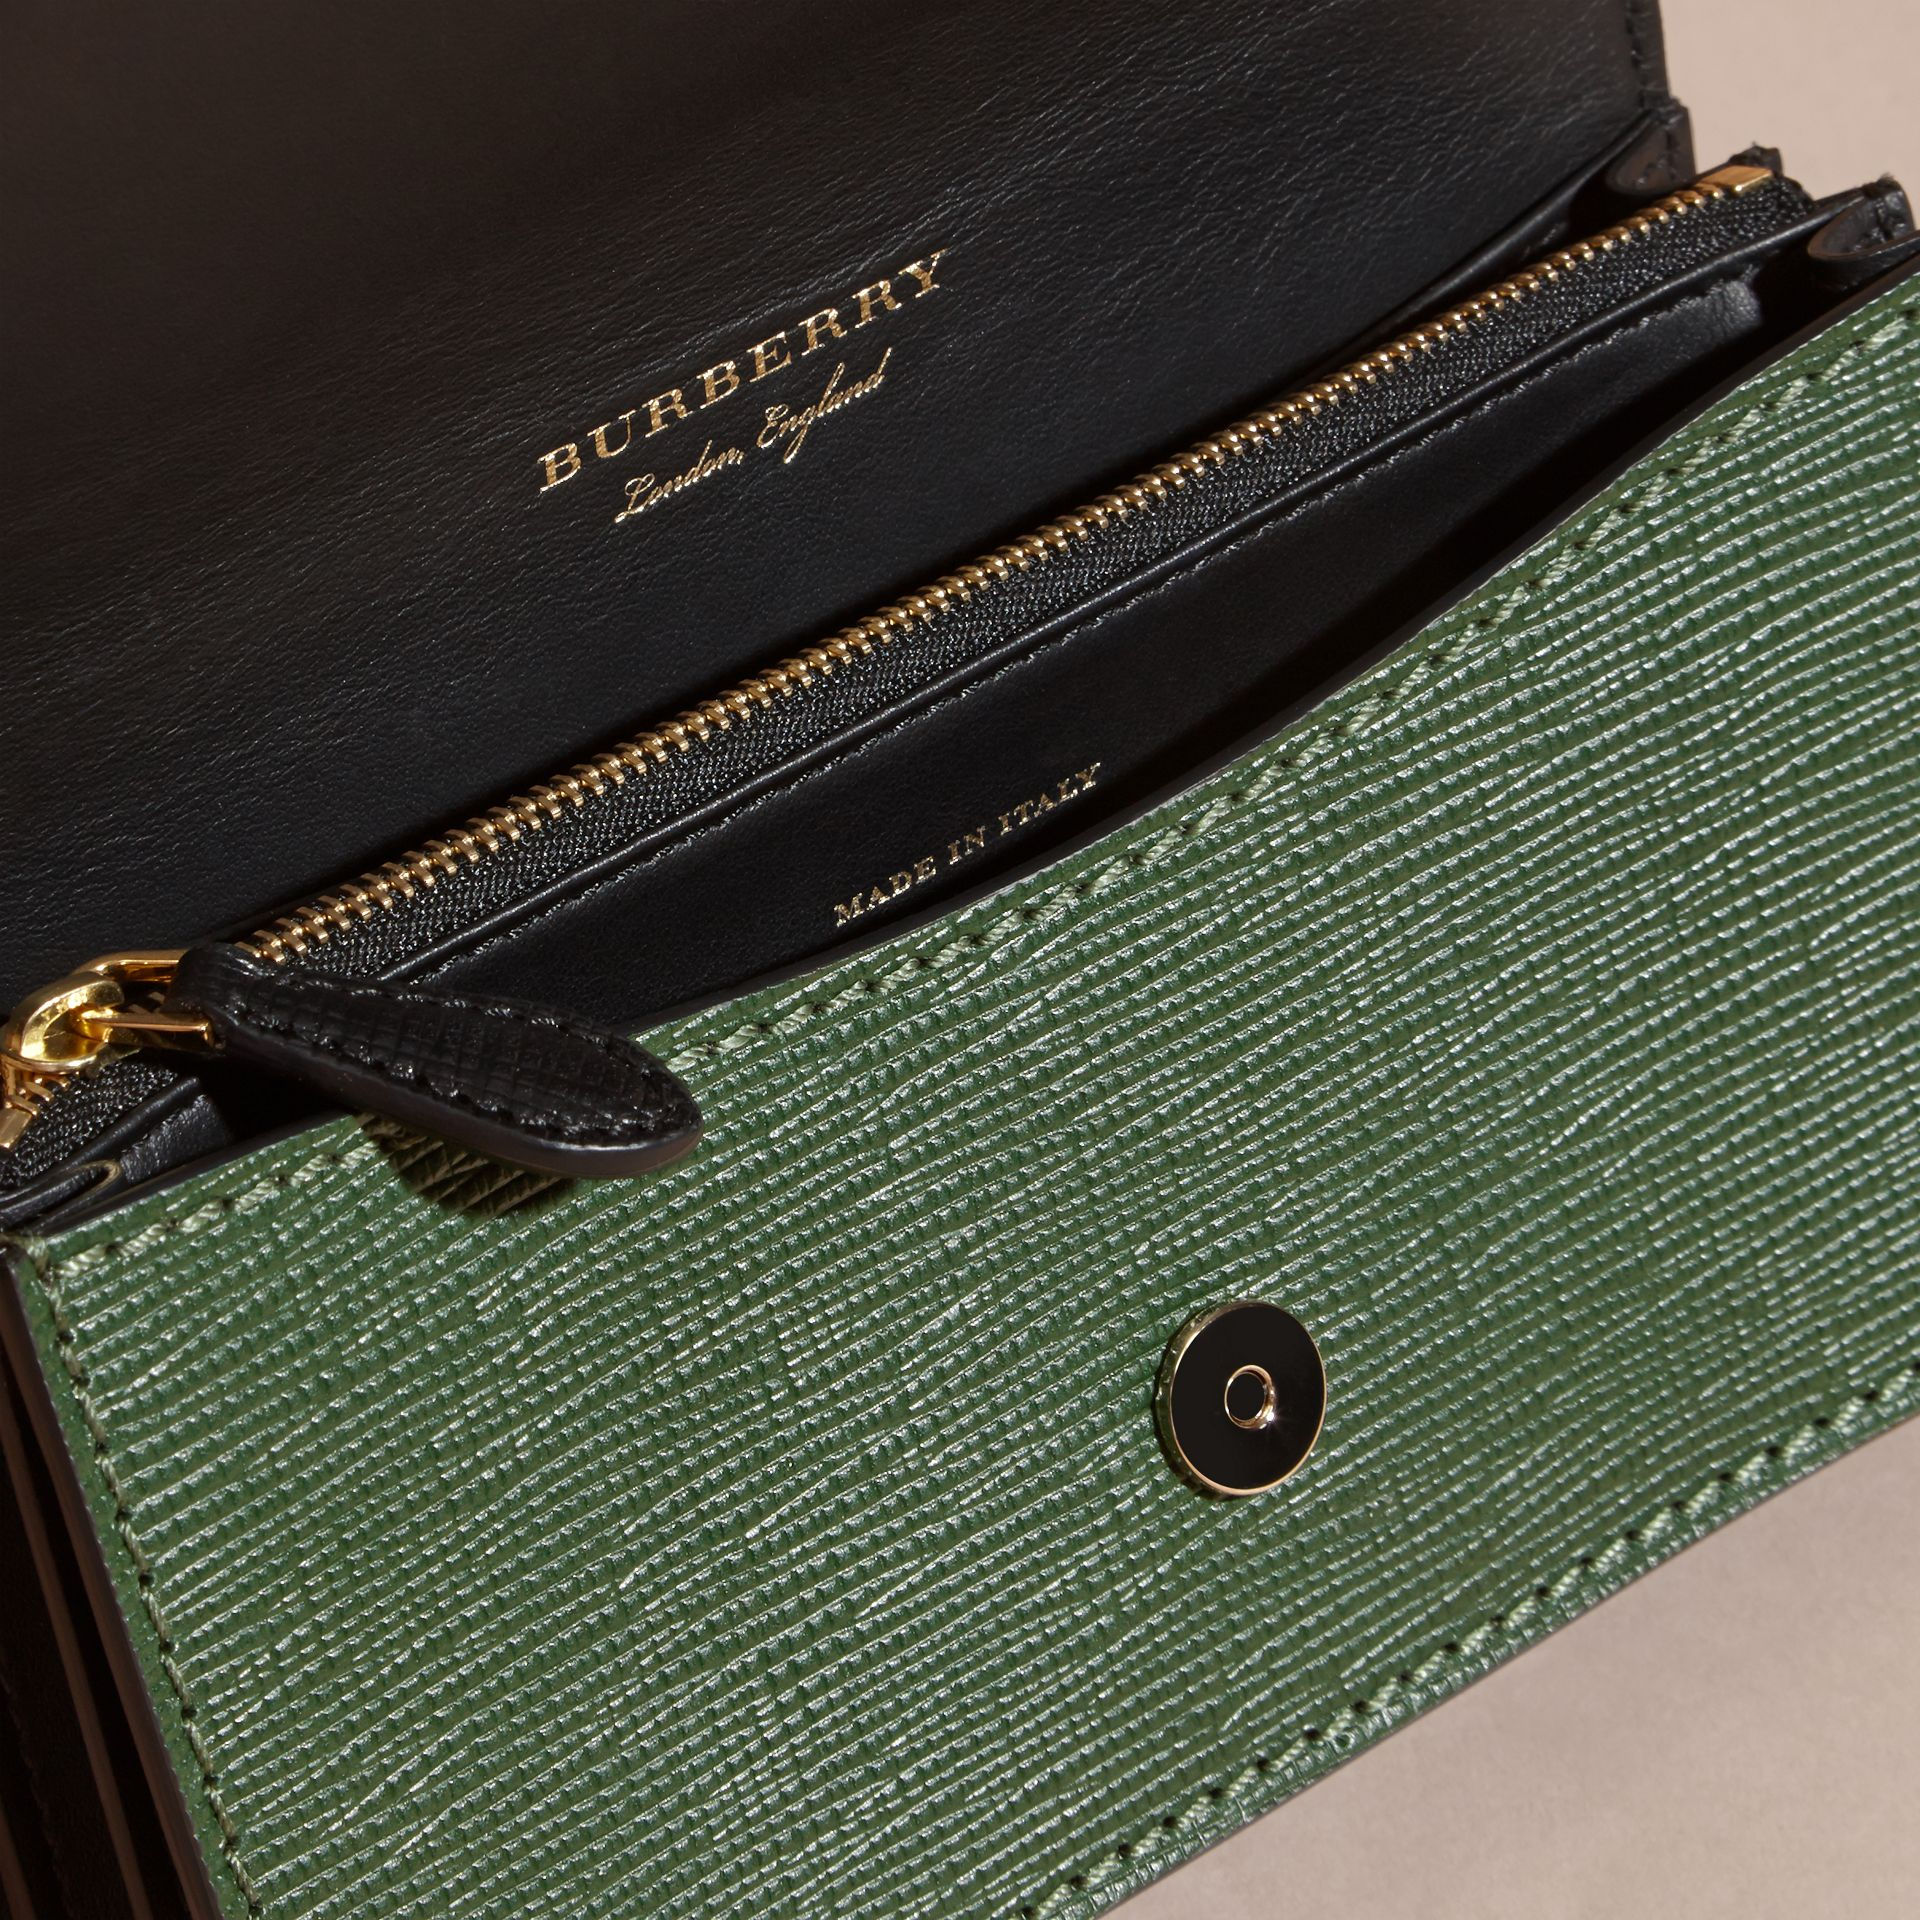 The Small Buckle Bag in House Check and Leather in Kelly Green/kelly Green - Women | Burberry Canada - gallery image 5